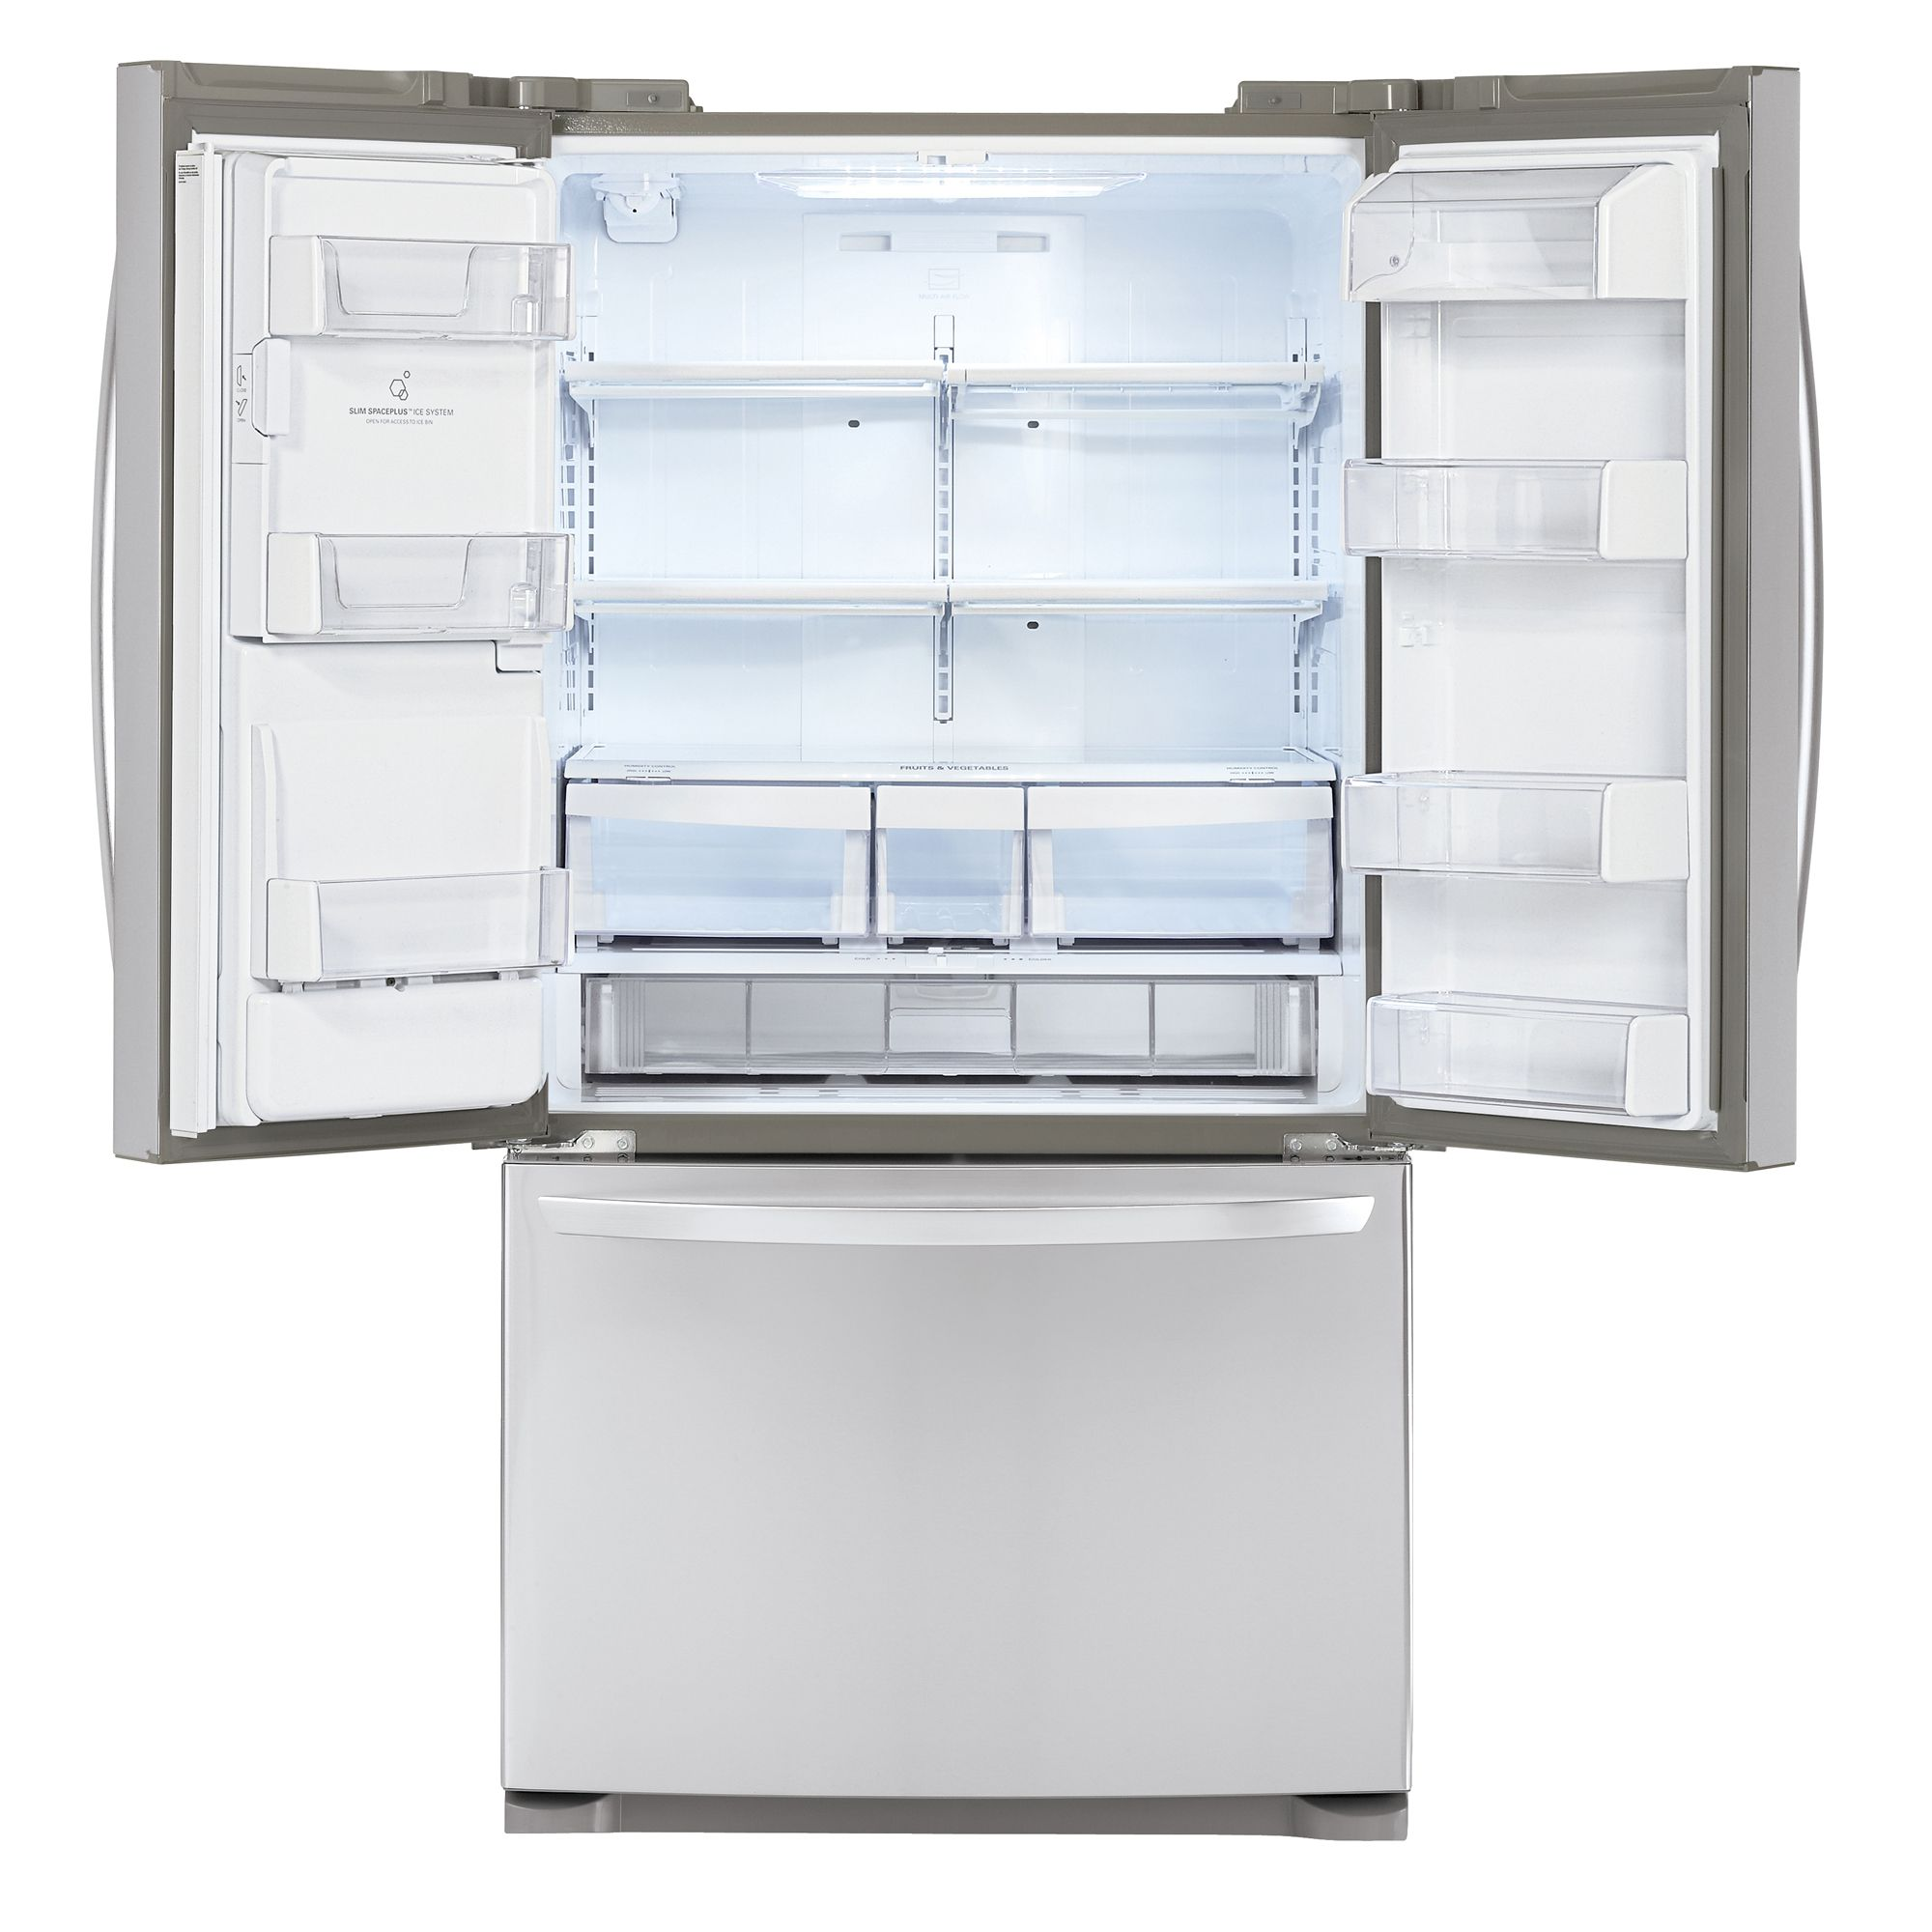 LG 20.5 cu. ft. Counter-Depth French-Door Bottom-Freezer Refrigerator